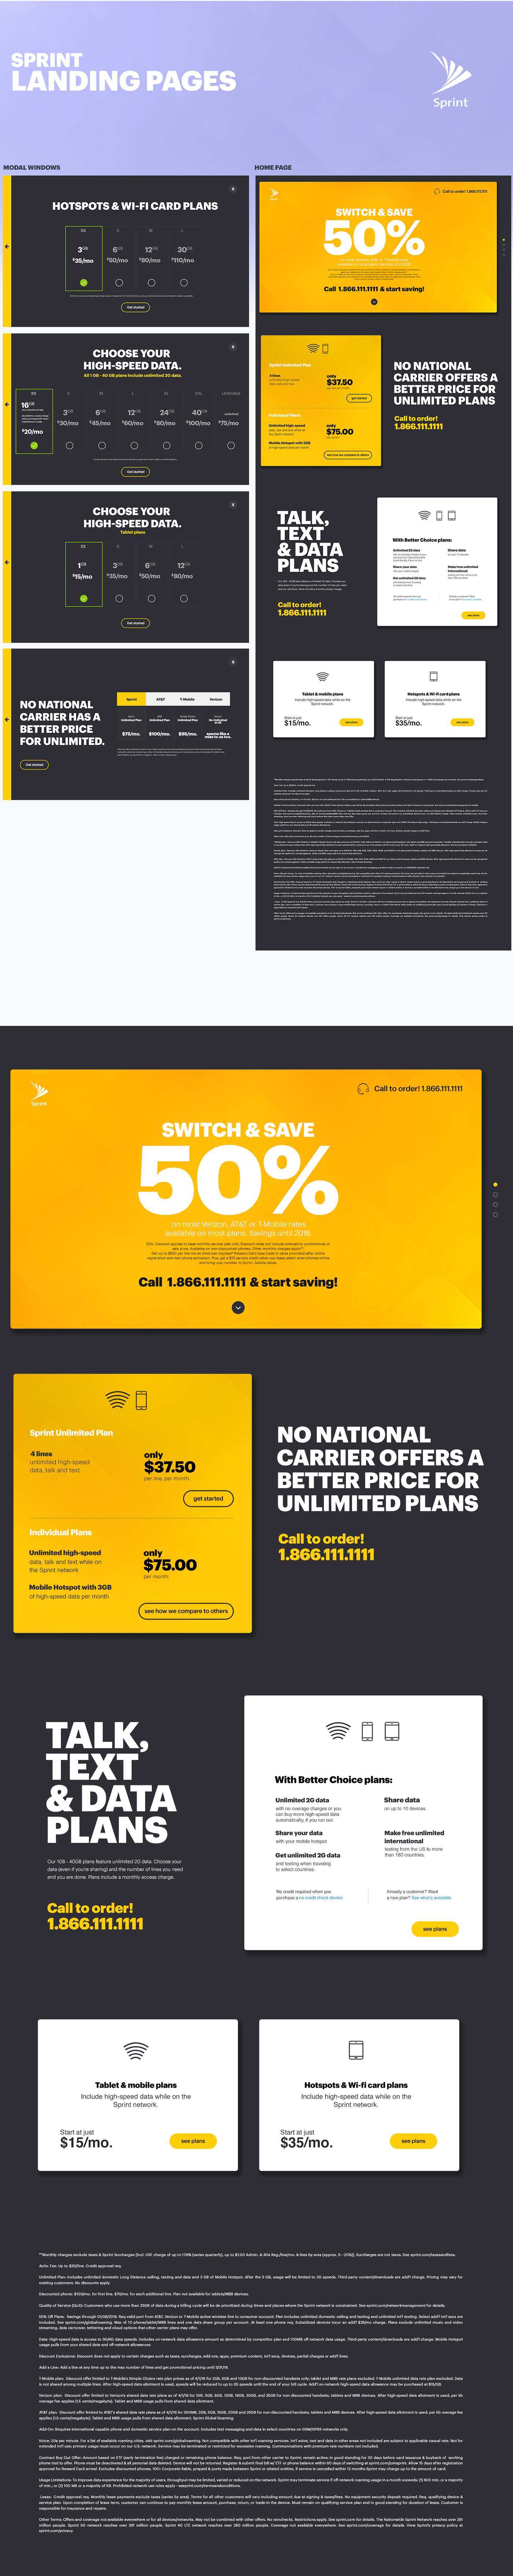 landign page Prototyping site ui colors flat colors minimal page clean type